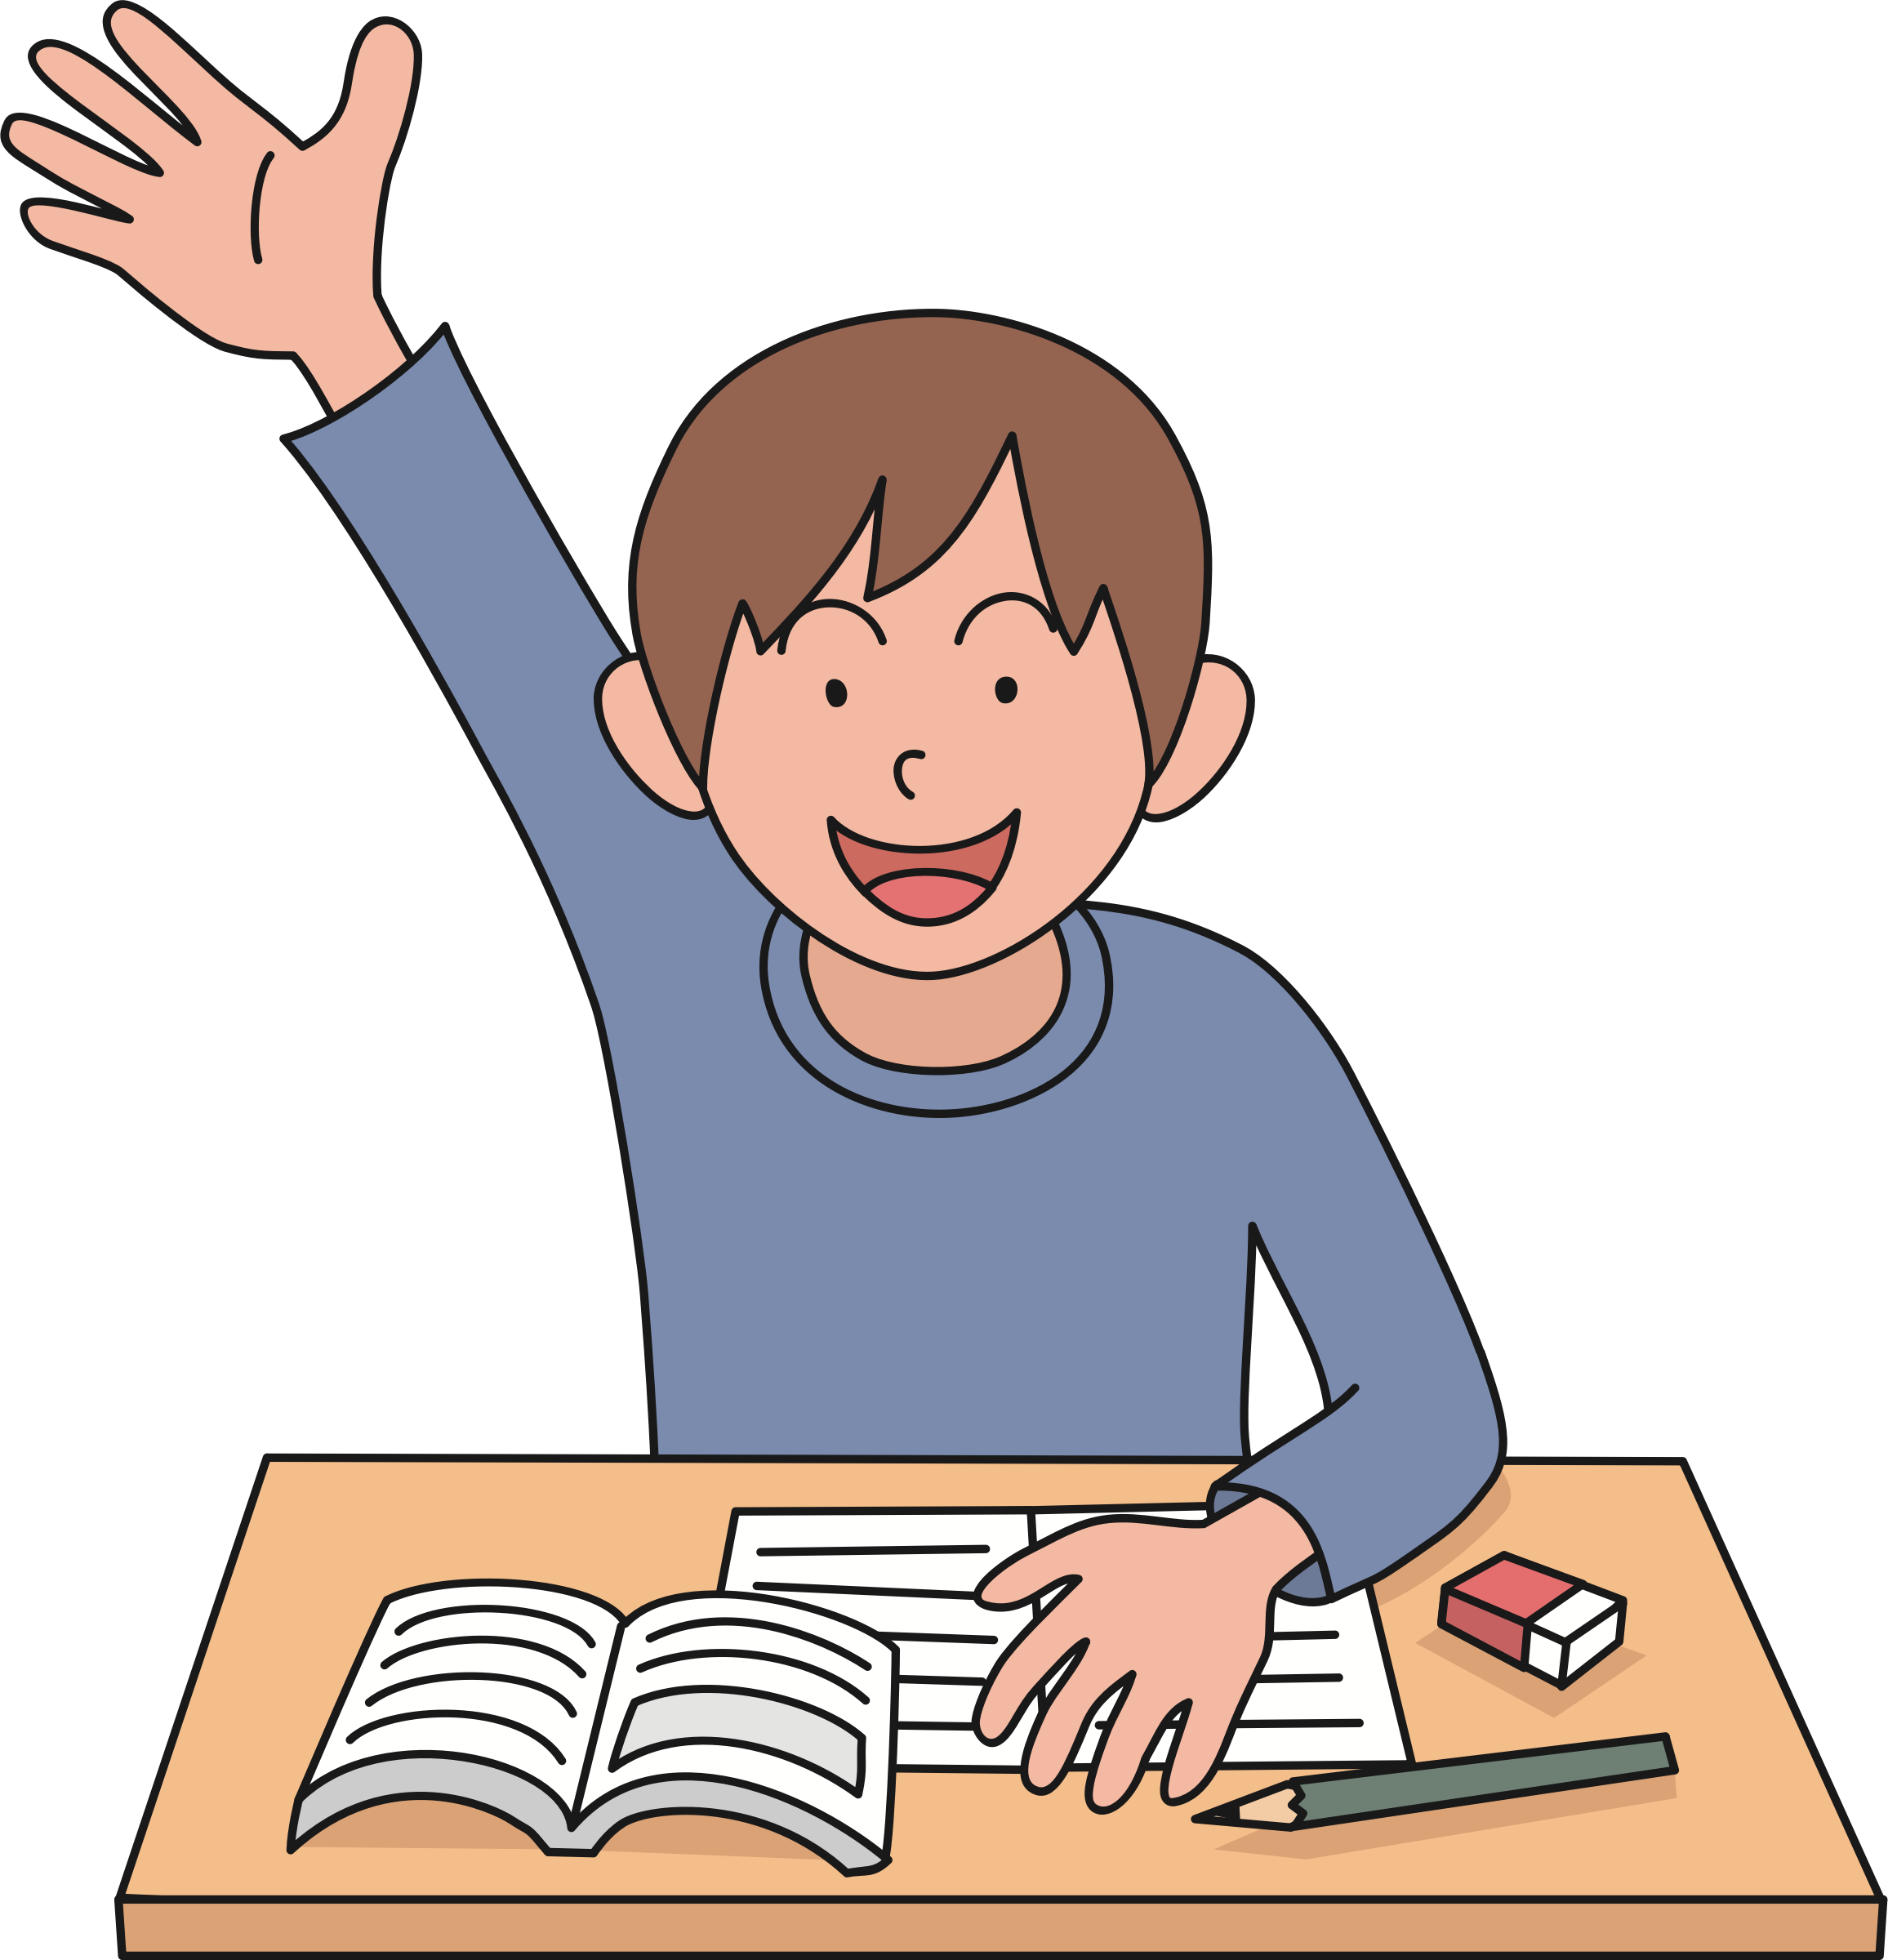 Raise hand clipart clipart images gallery for free download.